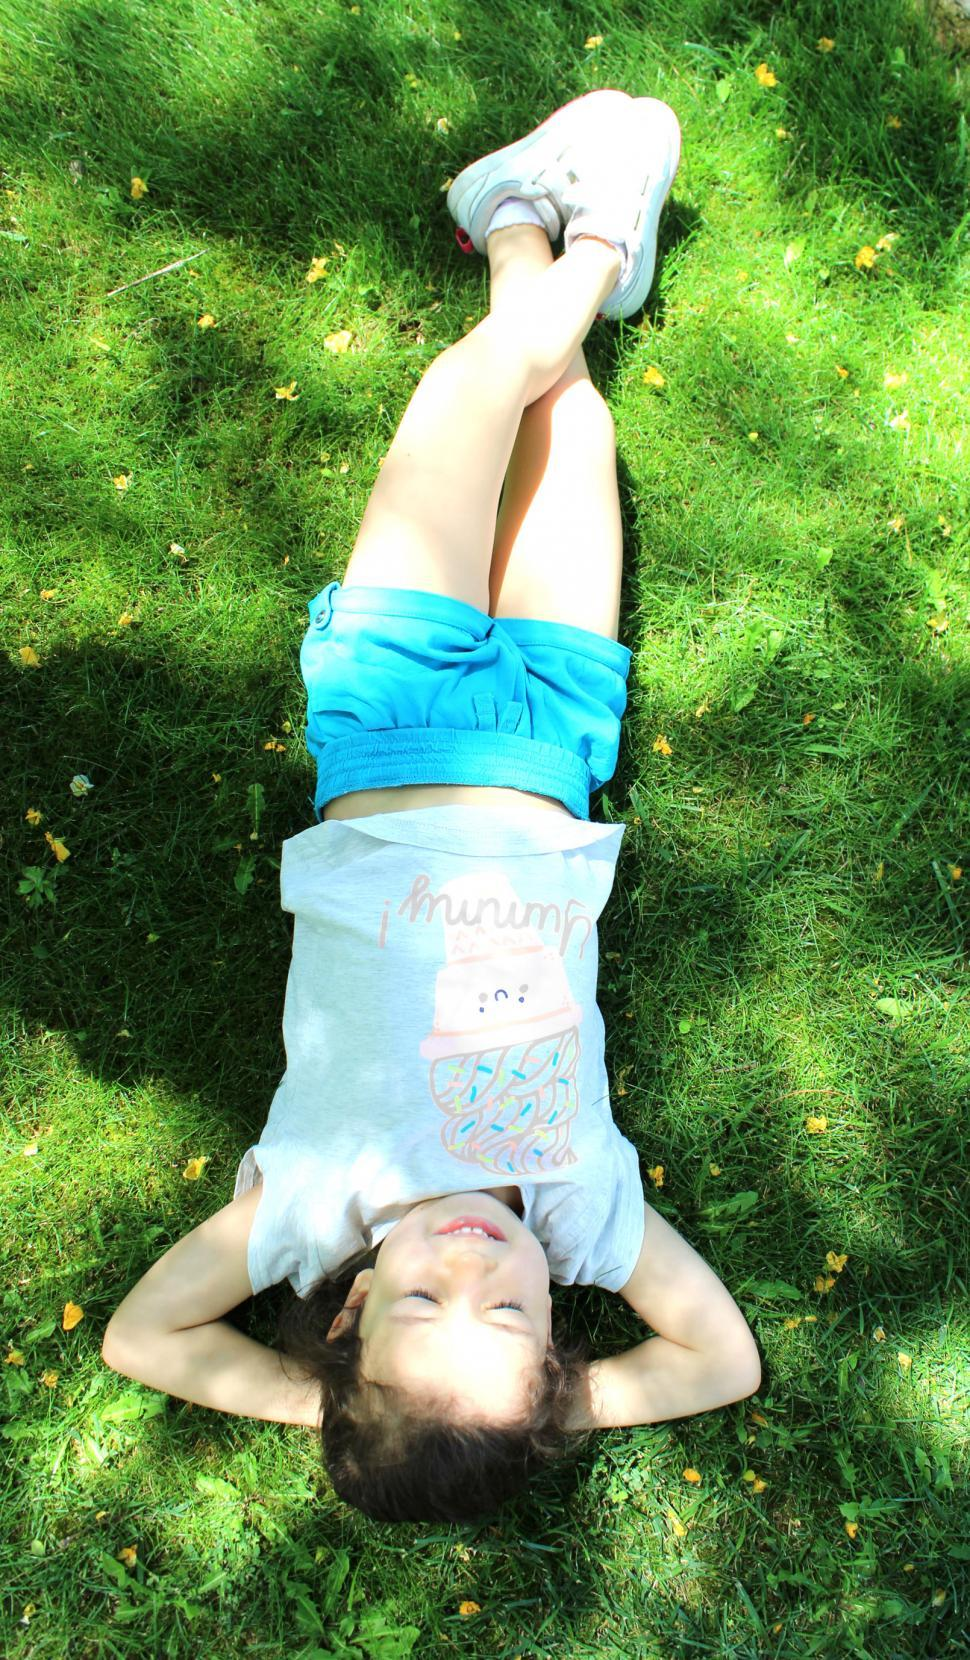 Download Free Stock HD Photo of Sweet girl relaxing on the grass - Top View Online